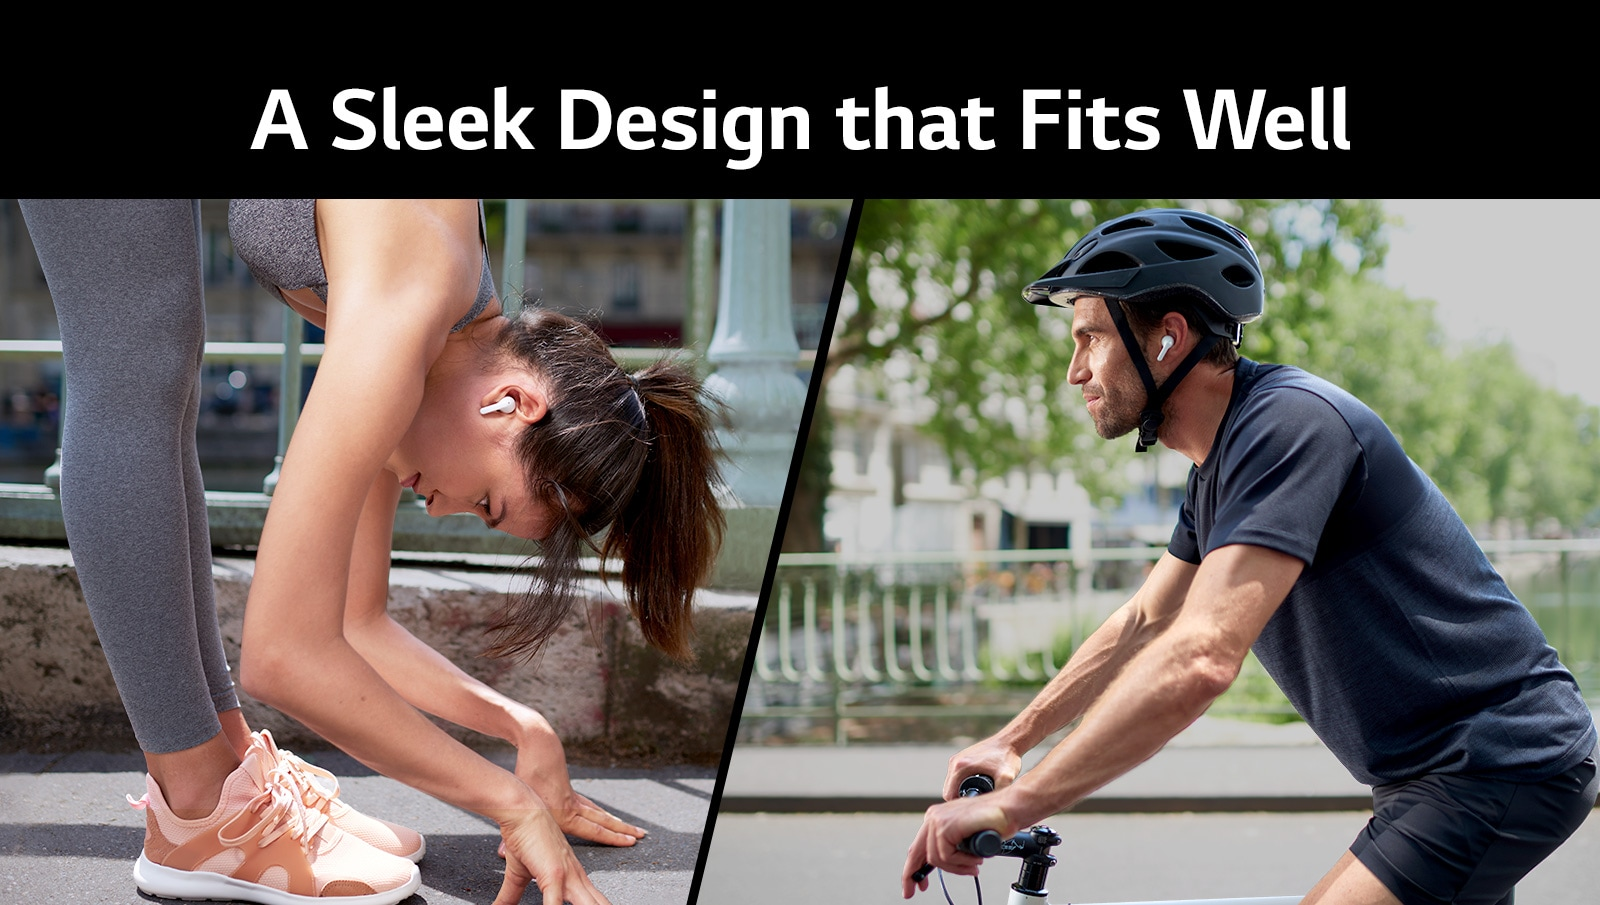 A woman is bending down to stretch while wearing TONE Free. A man is riding a bicycle.